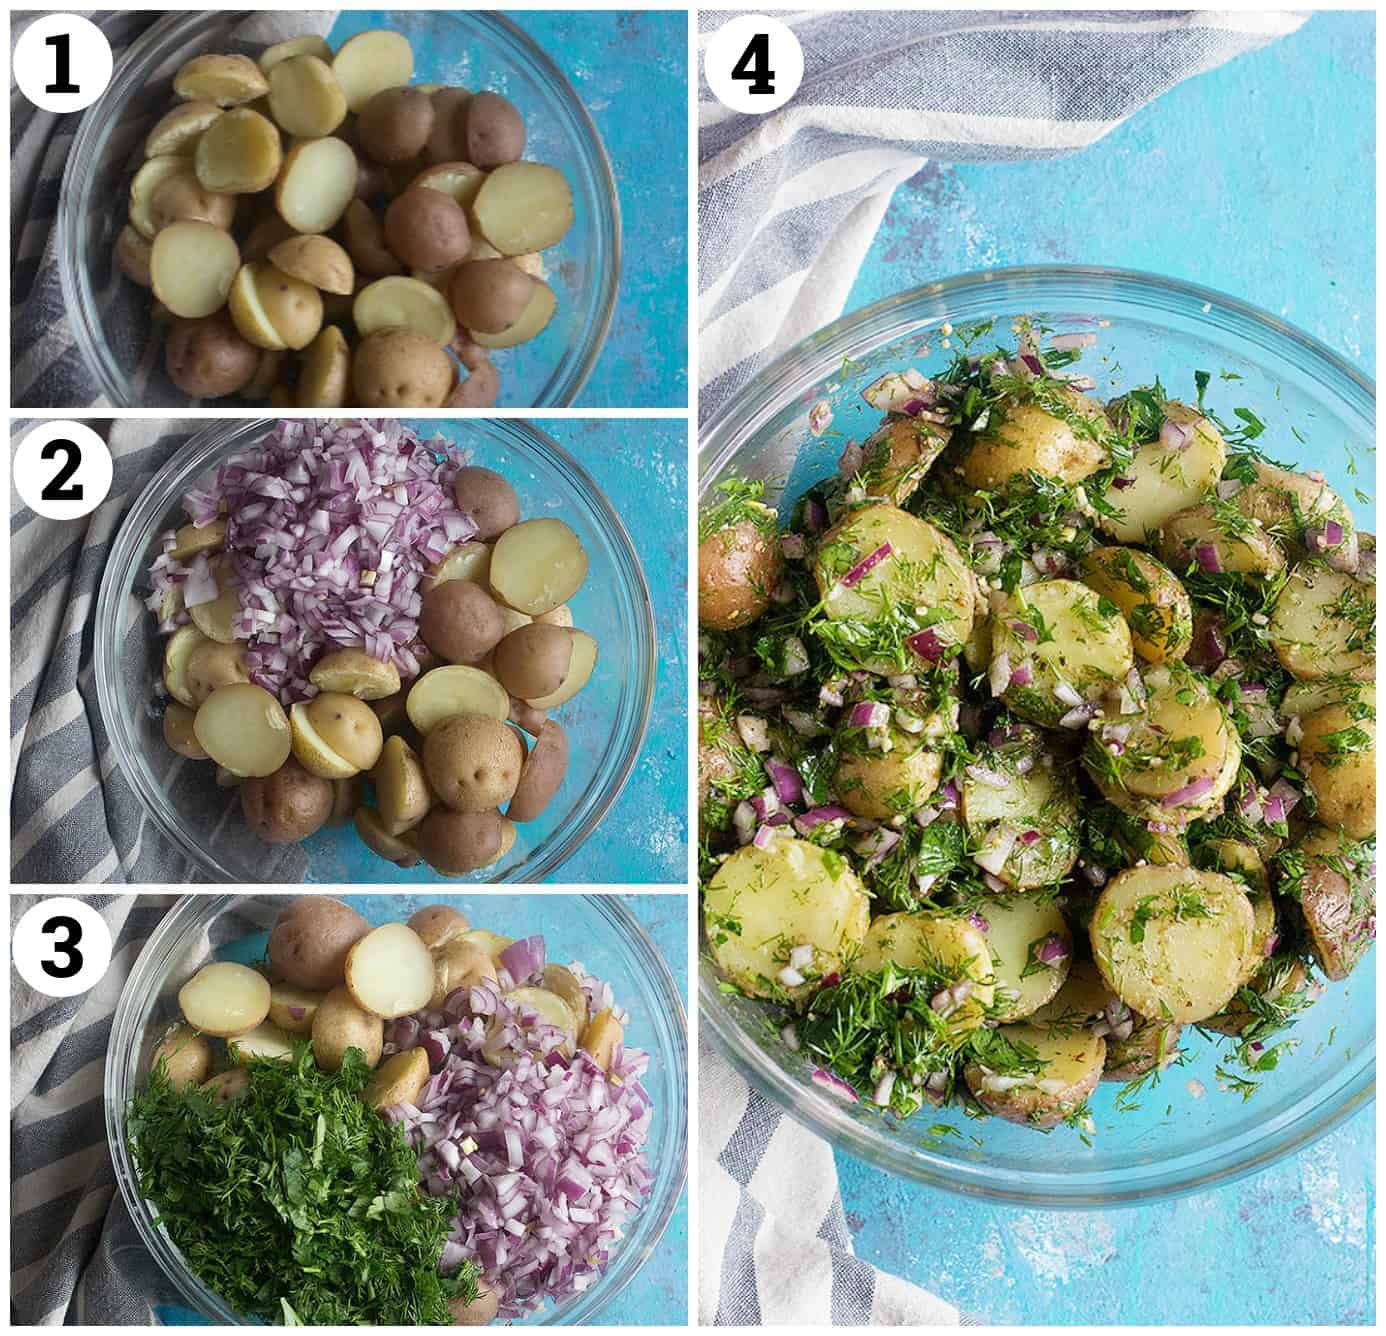 boil the potatoes, add the onion, add the herbs and the dressing.